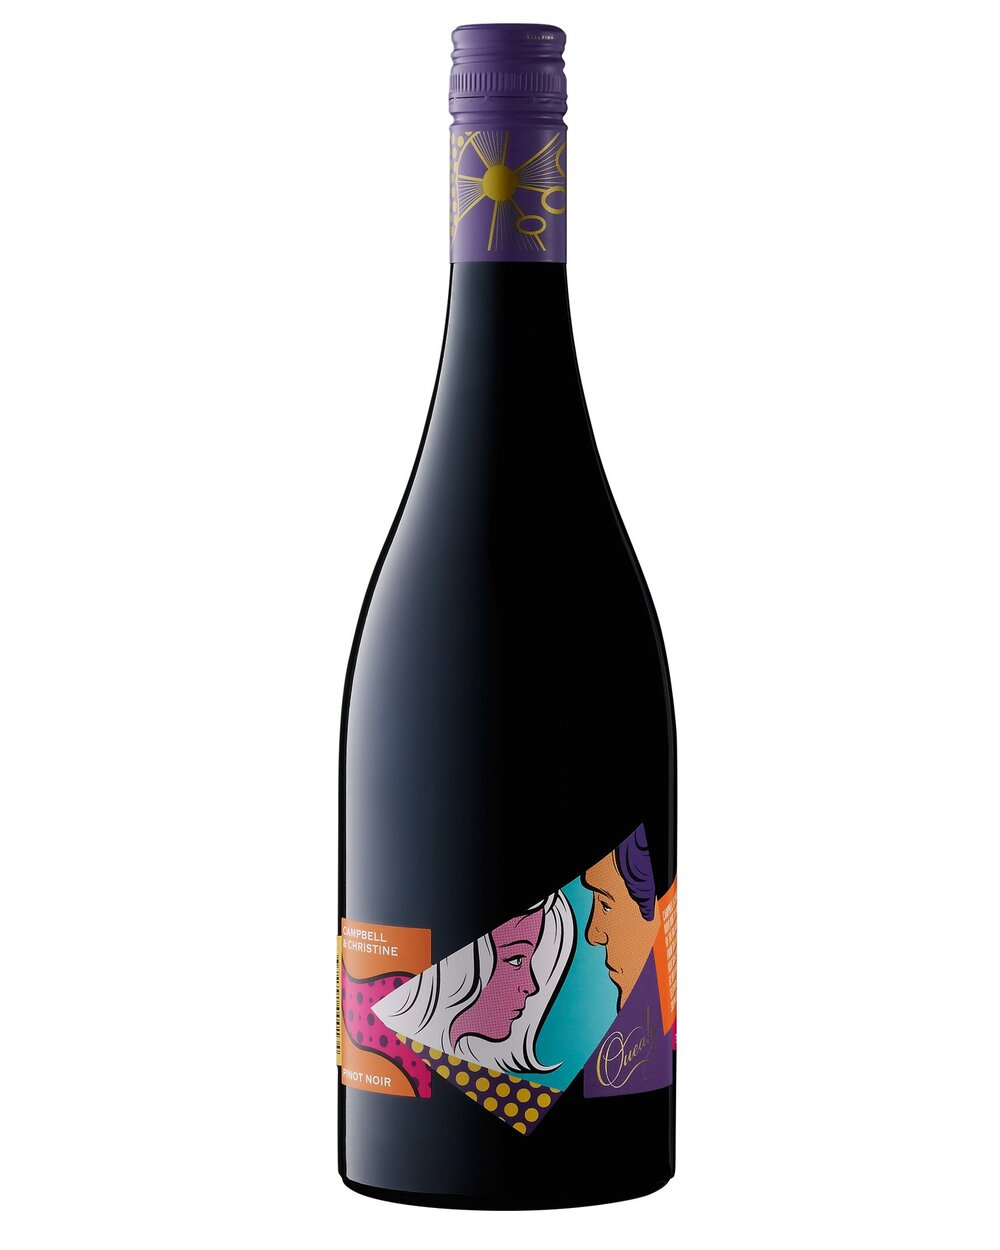 QUEALY Campbell & Christine Pinot Noir クイーリー カンベル&クリスティン ピノノワール   モーニングトンペンニンシュラバルナリング ¥ 4,830 2016, 750ml, 13.5   Cambell Mattisson 90 points   オーガニック, 1994, Hand Picked, Wild MV6, 114 and 115. 20% Whole Bunch, 24 days in vats, bentonite pad filter, low intervention, slight acid adjustment, minimal sulfites.  Has a dark black crimson colour, bright and translucent. The aroma is violets and plums, the palate rich and tannic however there is a deep and soft core. Firm, dry with stewy red berries and an itch of woody spice. Looks to have plenty of development up its sleeve. Will be interesting to follow